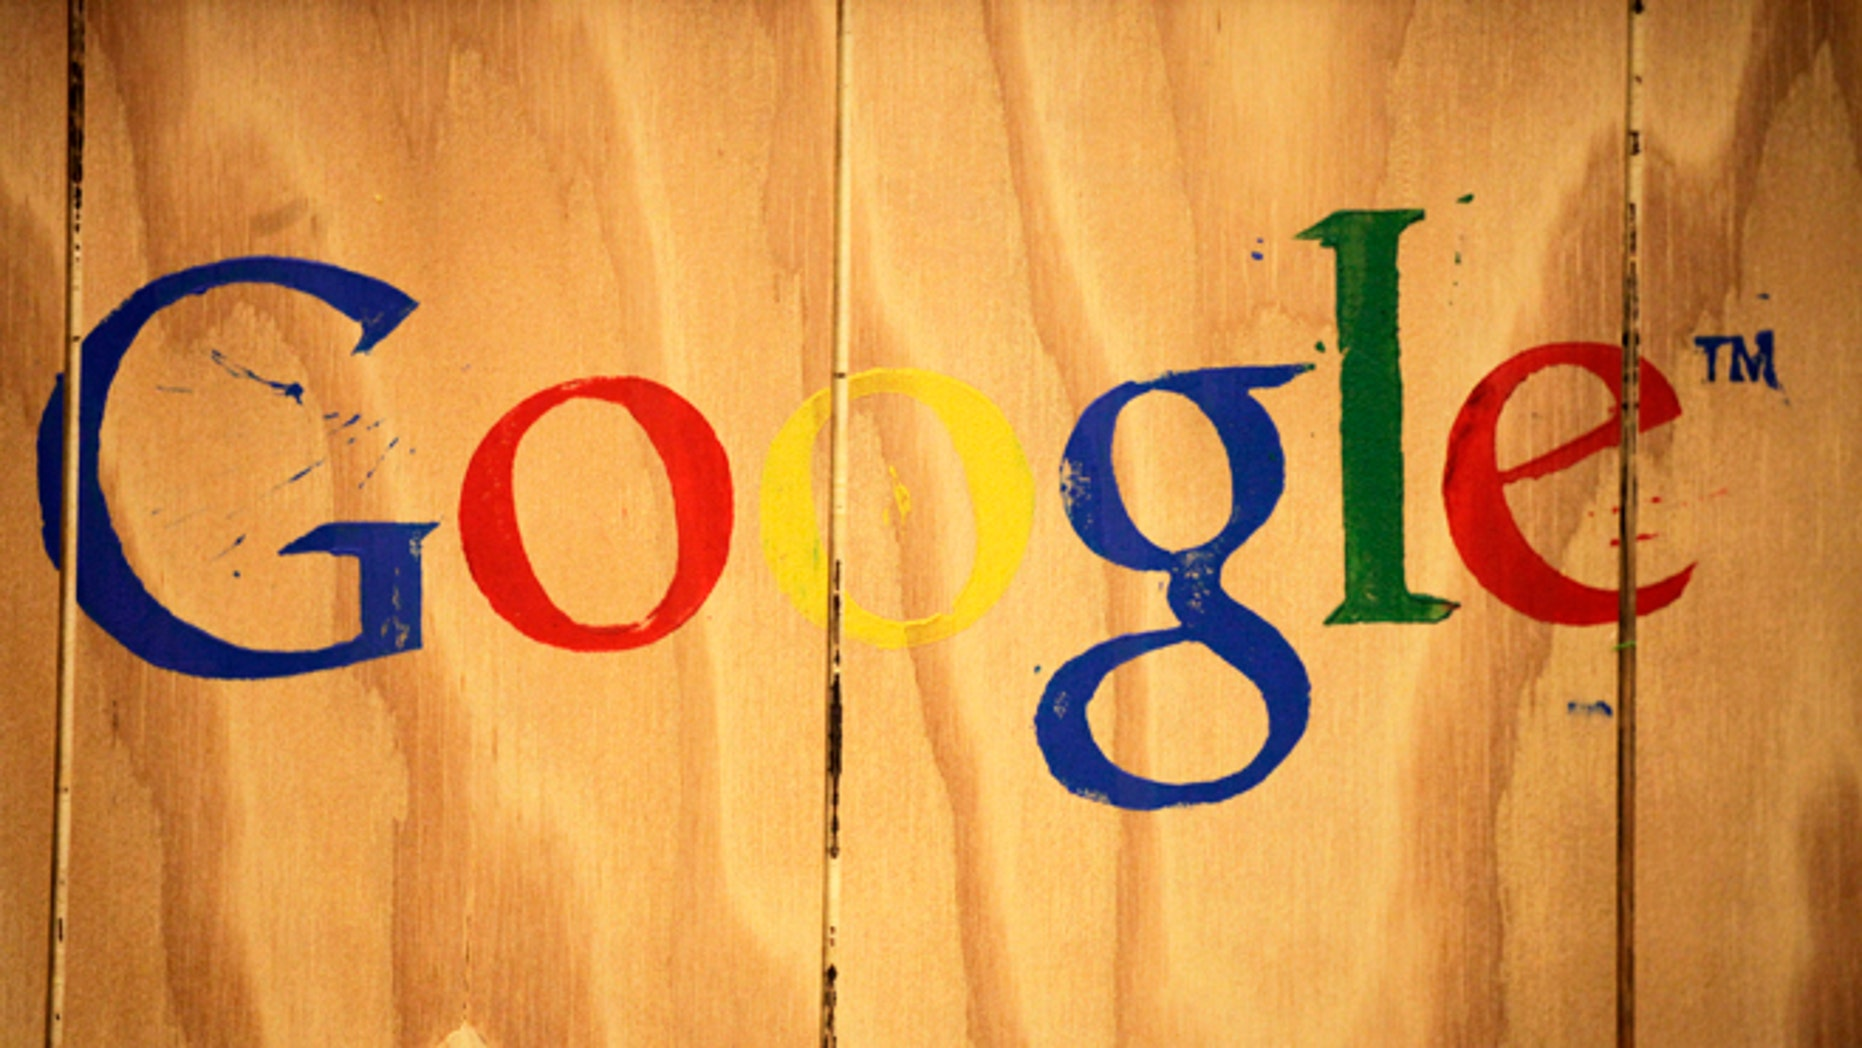 A Google logo is painted on the side of a plywood box at Google offices in New York.